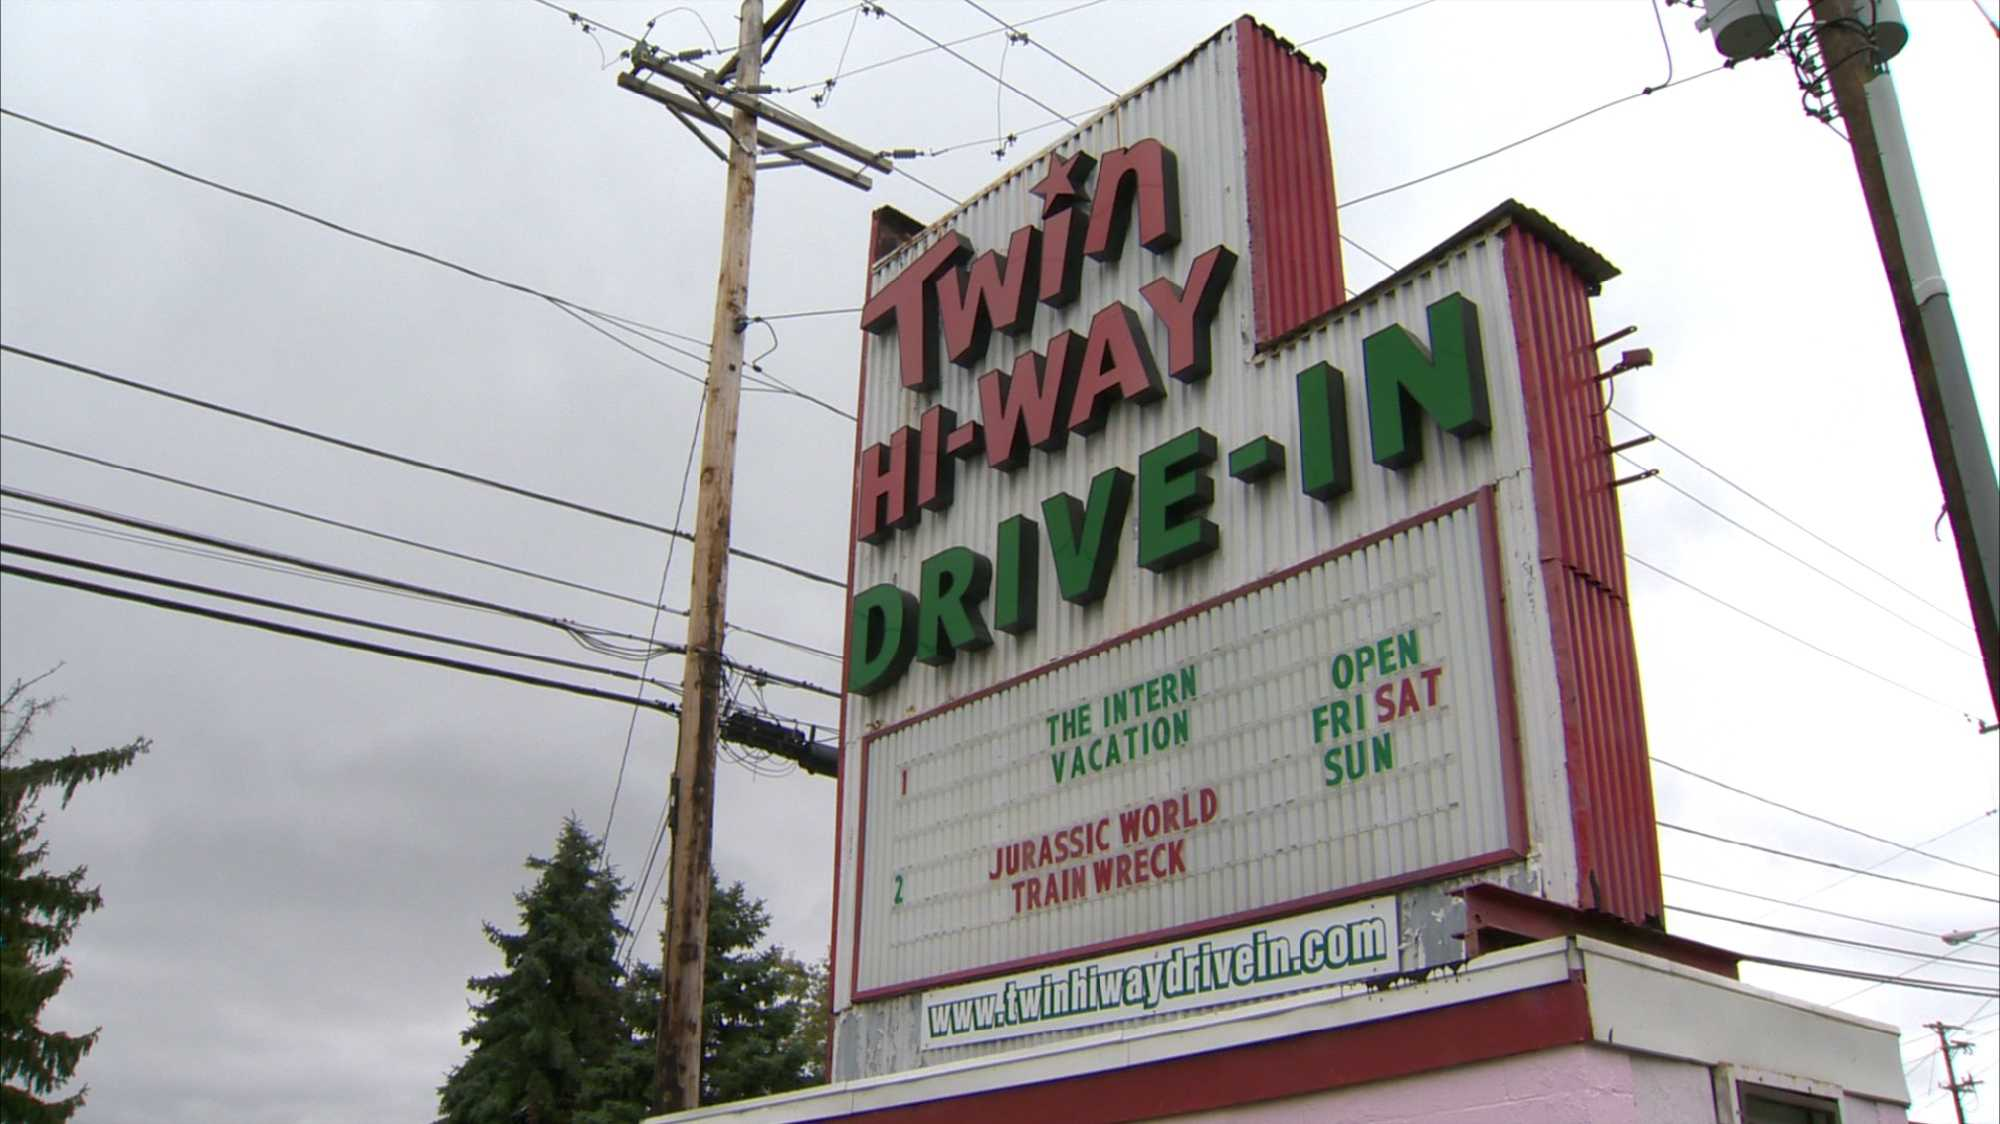 The Twin Hi-Way Drive-In movie theater in Robinson Township.